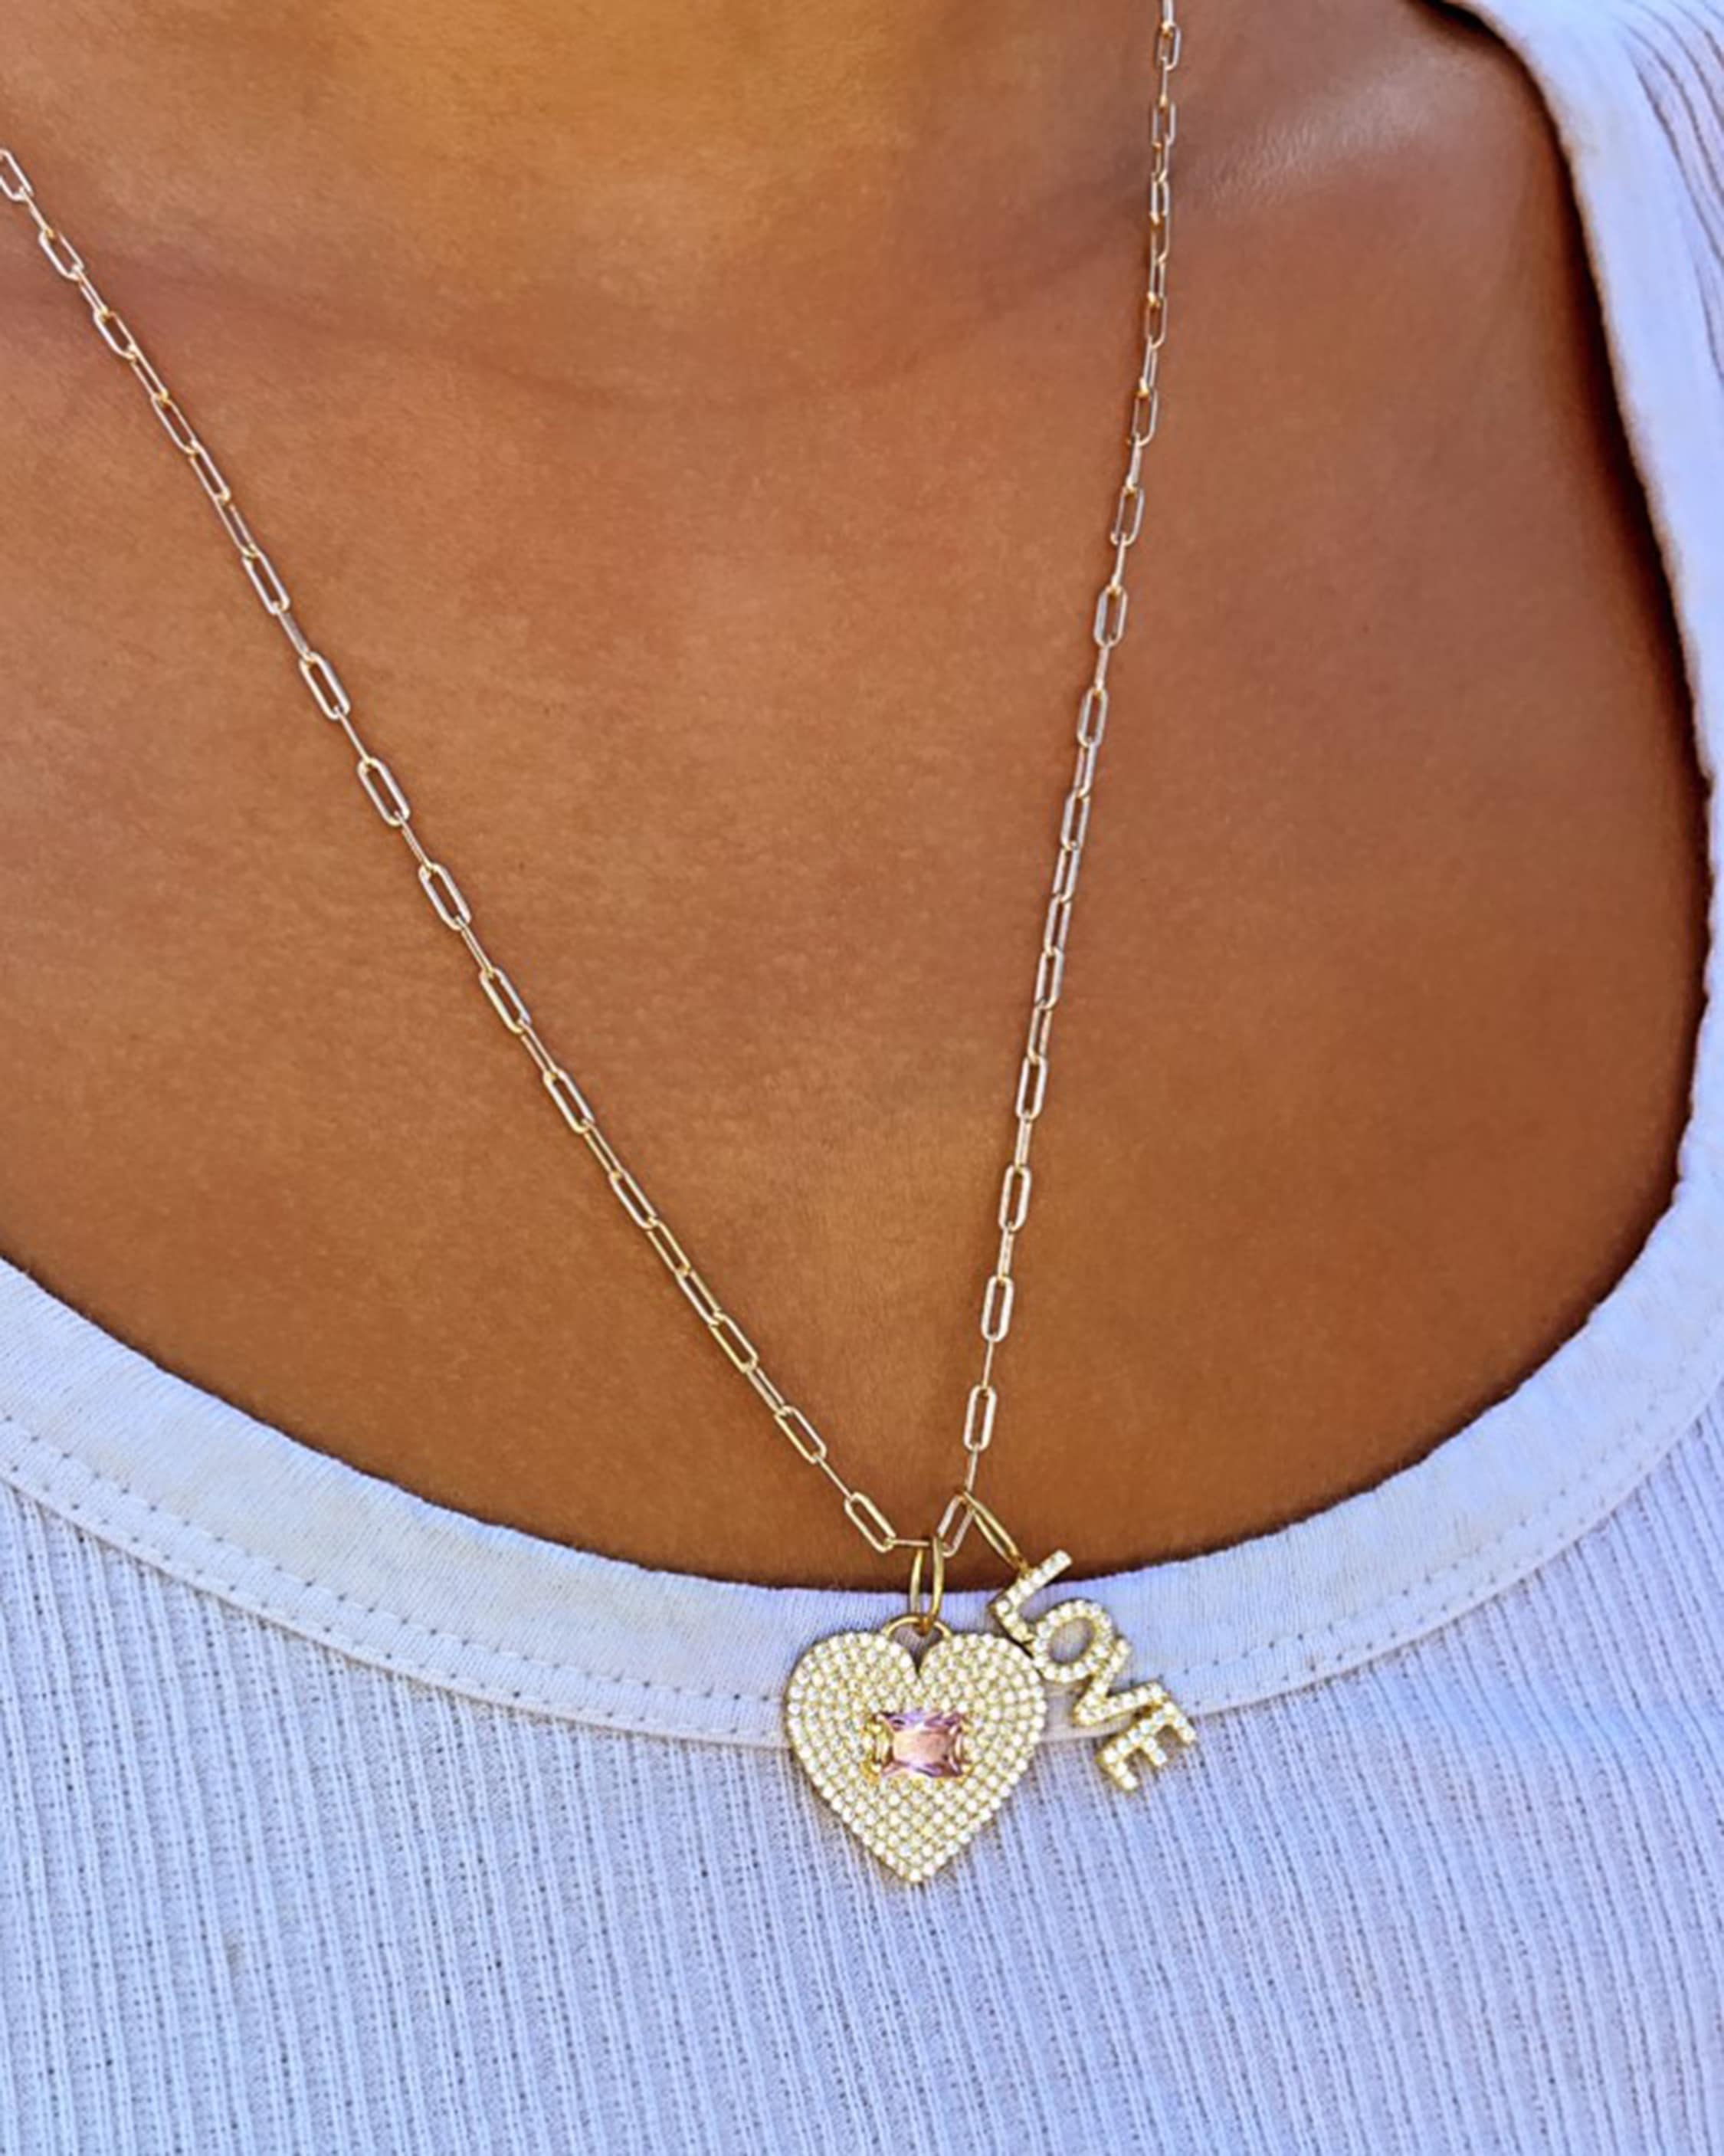 SHYMI Exclusive Pave Love Charm Necklace 2